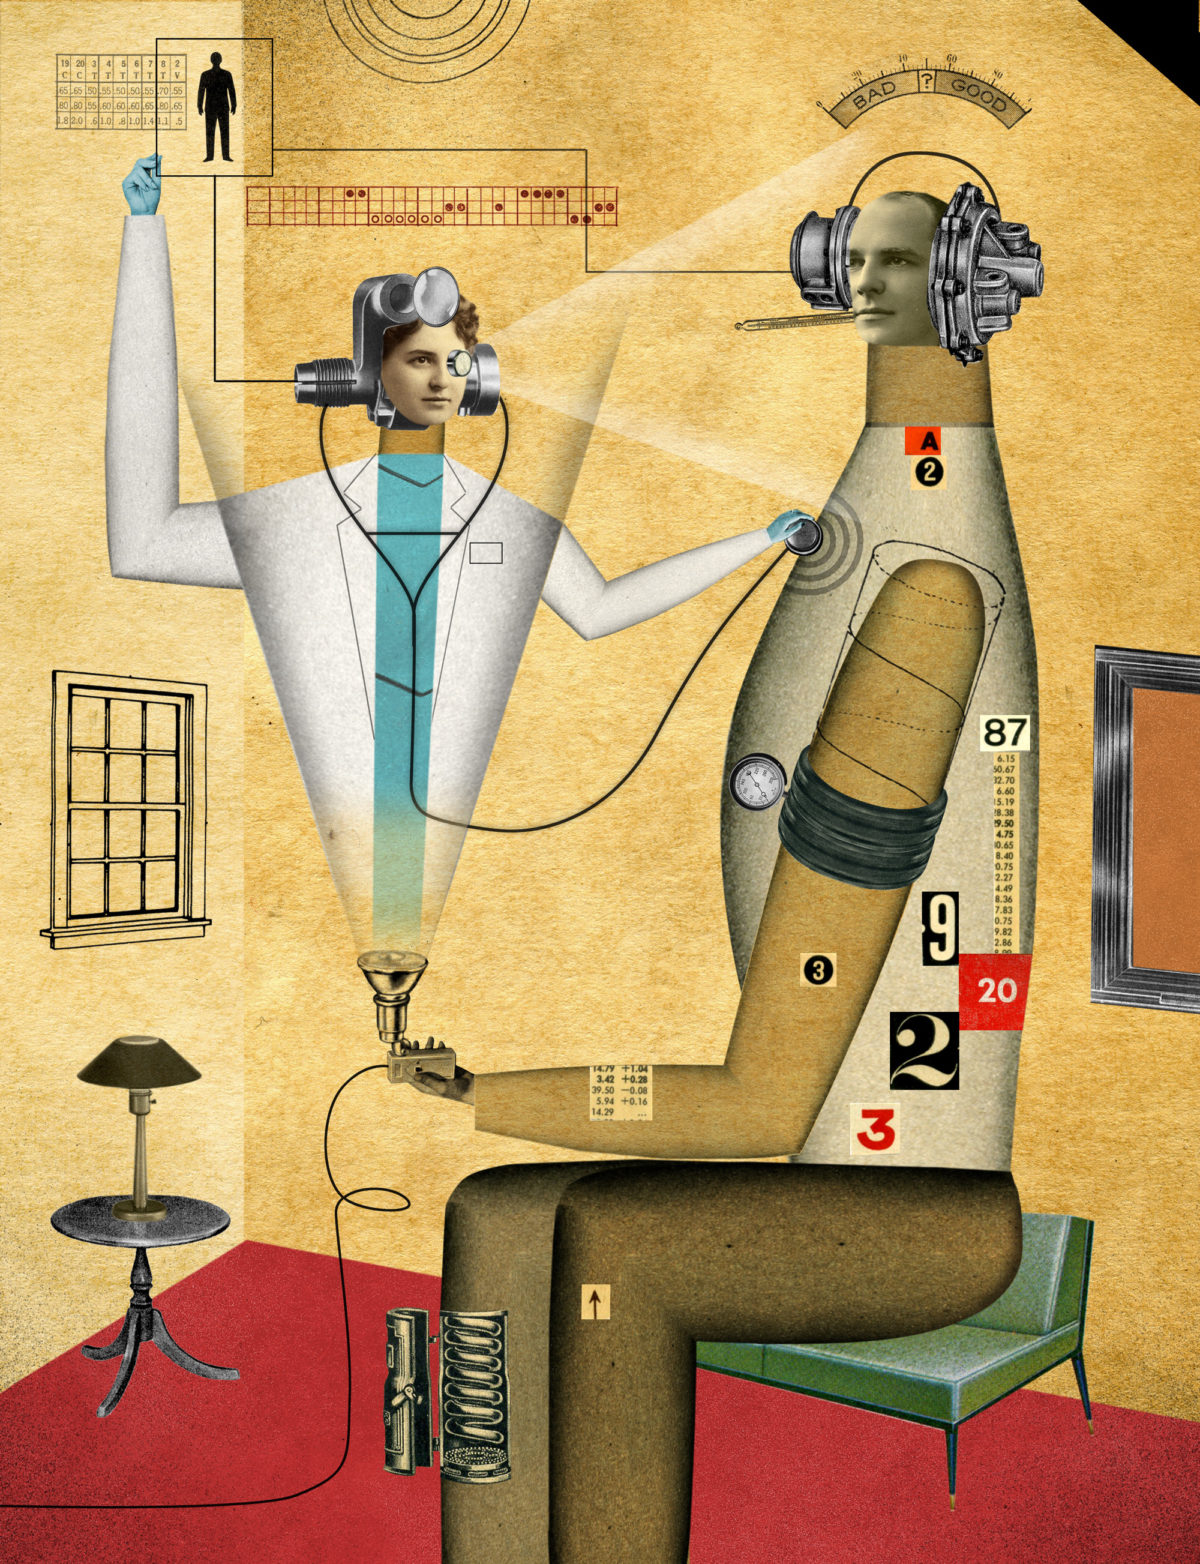 Virtual doctor visits and other digital innovations in health care